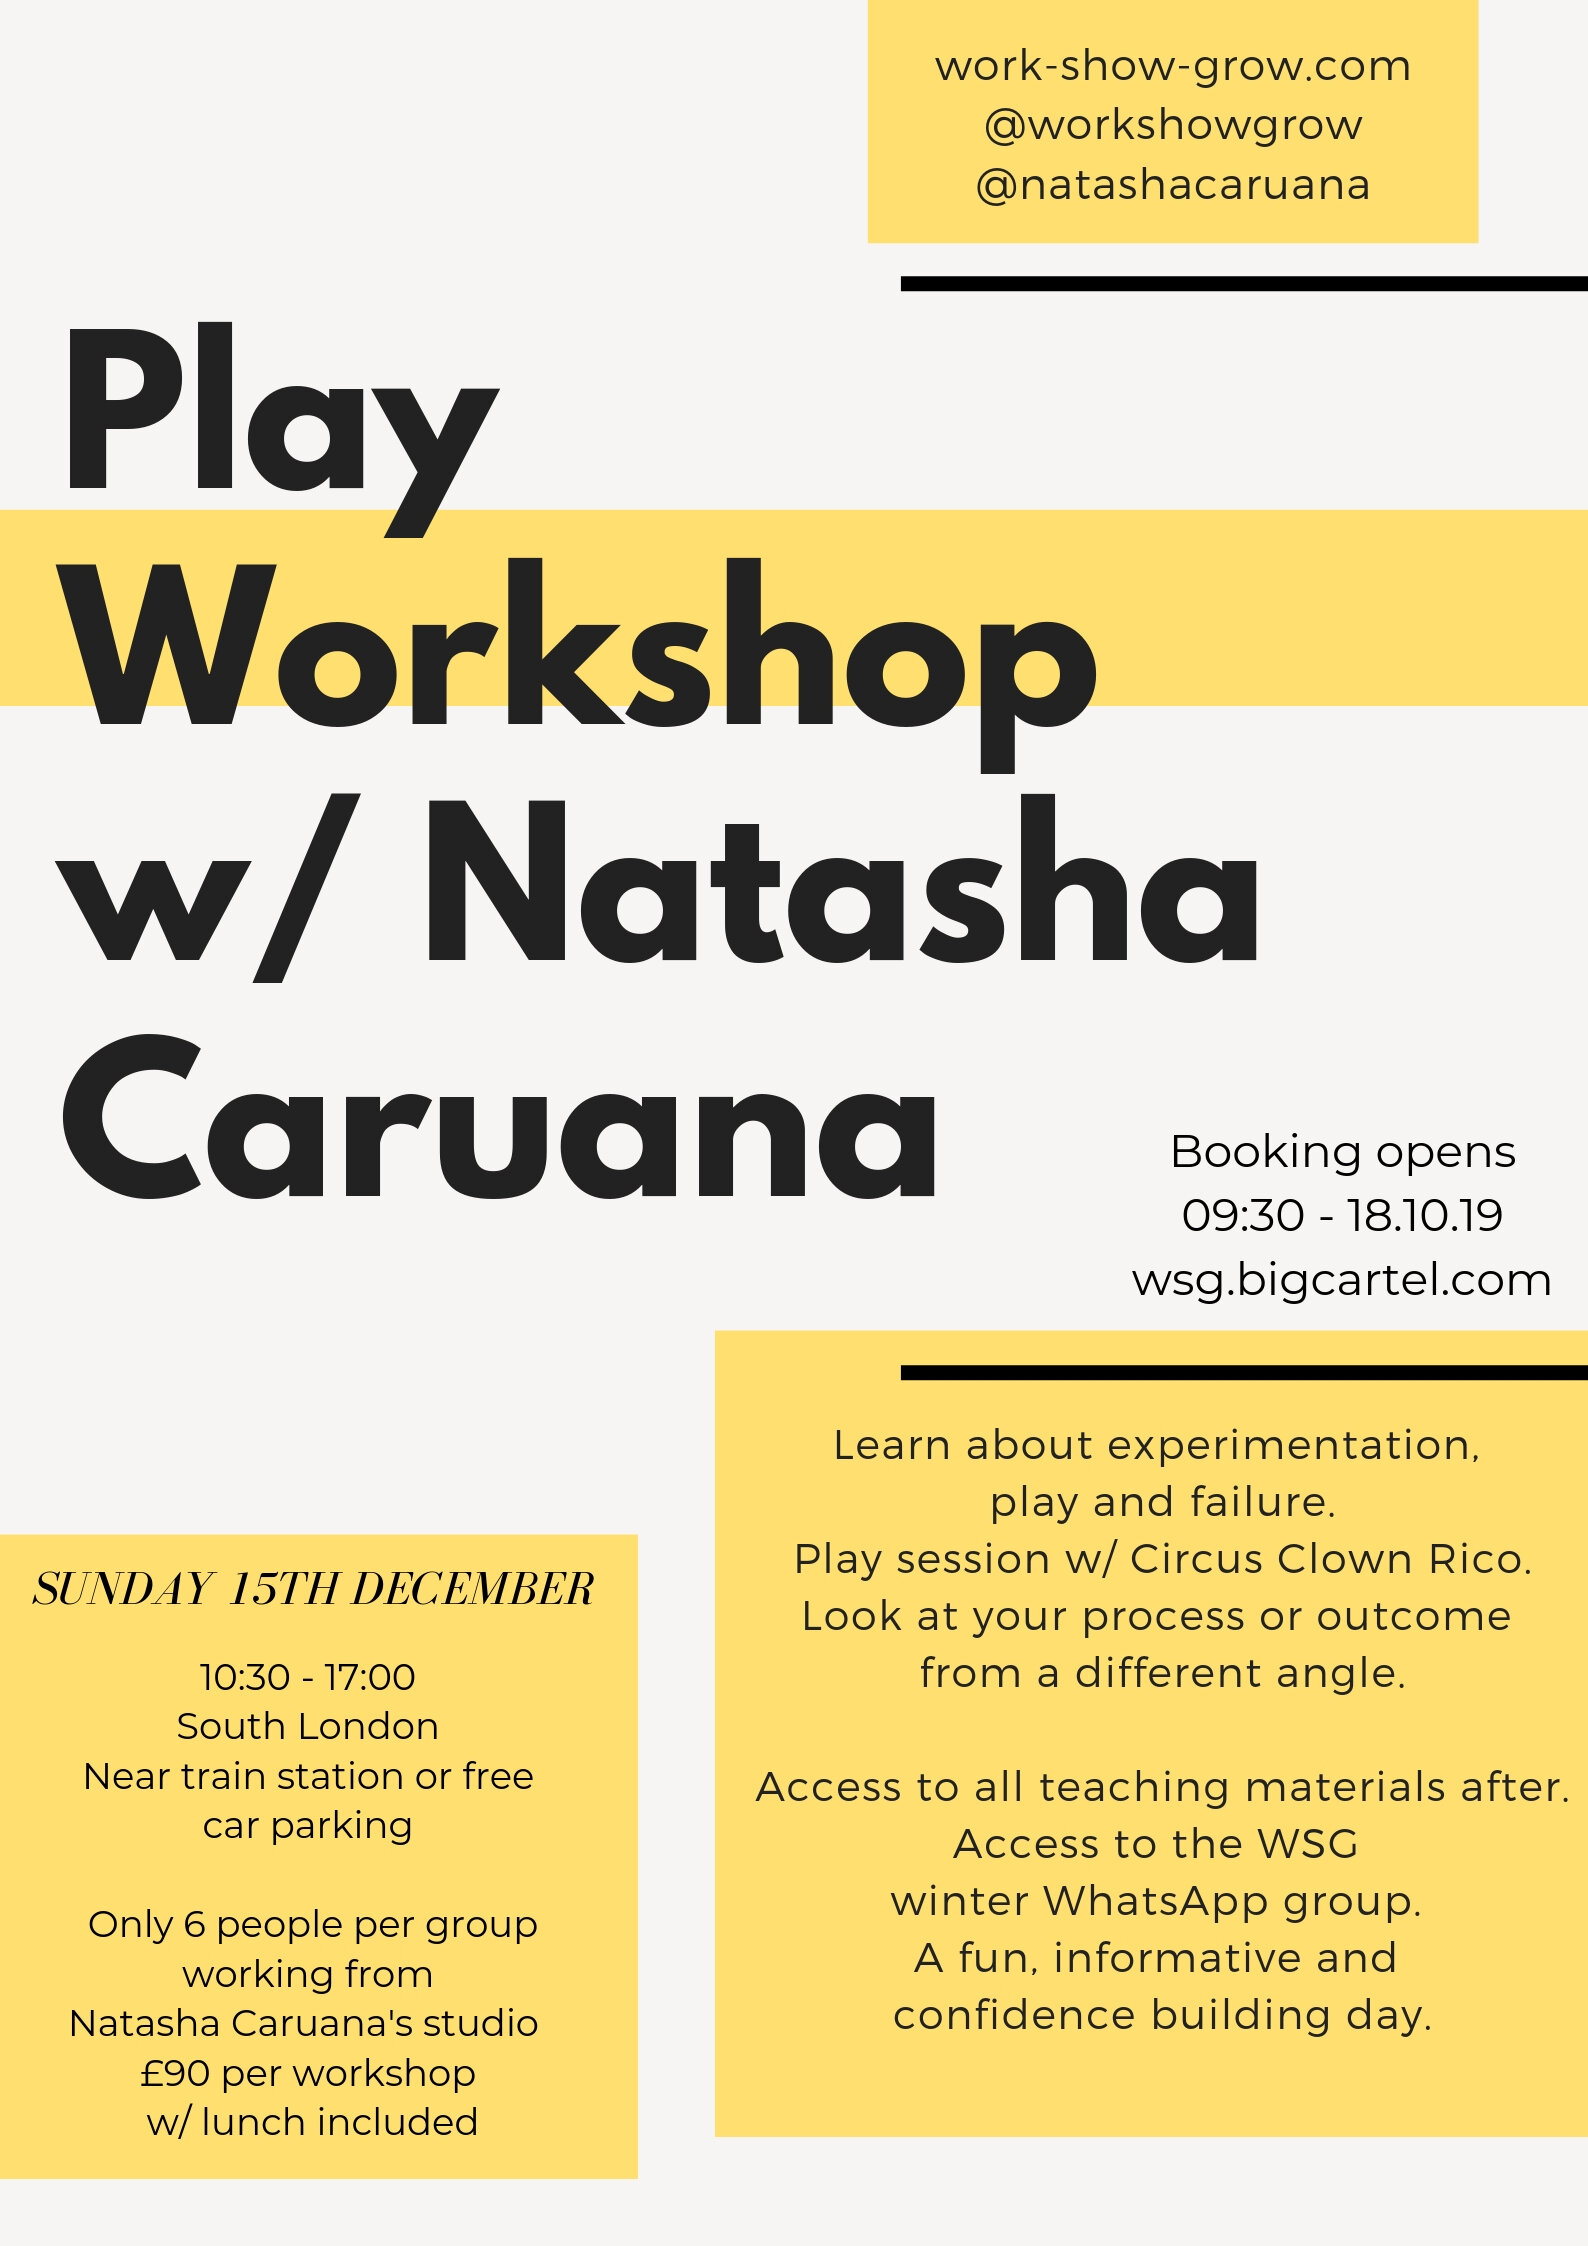 PLAY -Sunday 15th December10:30 - 17:00BOOK HERE - Learn about experimentation, play and failure.Practical session with Circus Clown Rico.Look at your process or outcome of your project from a different angle.